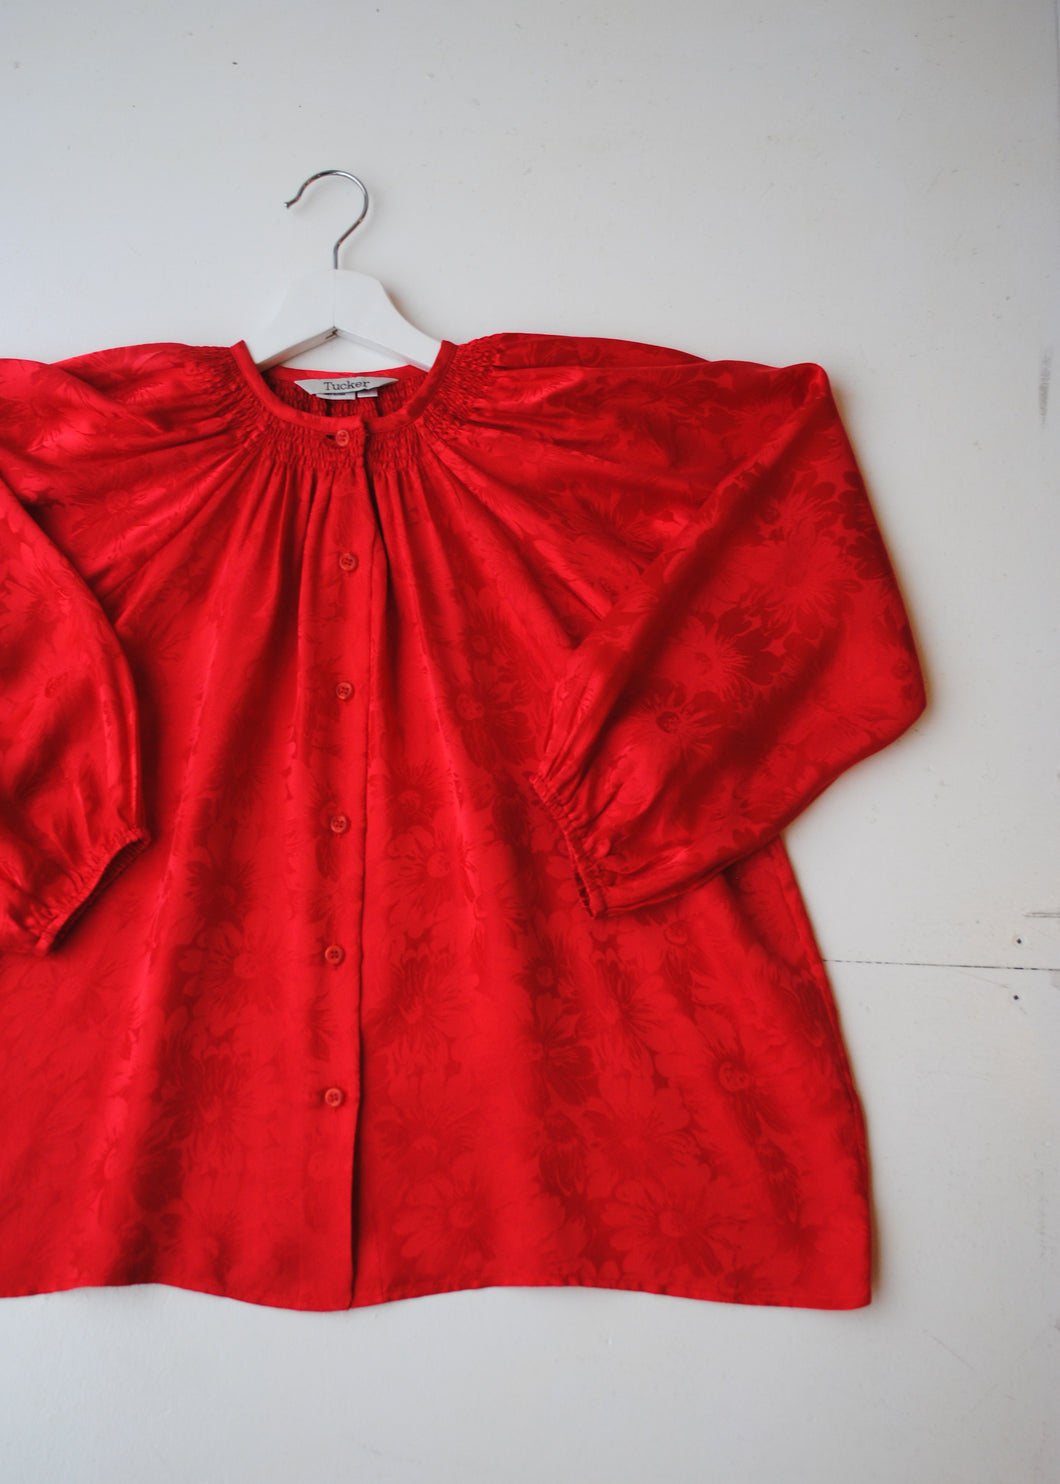 Red Silk Peasant Blouse, Small